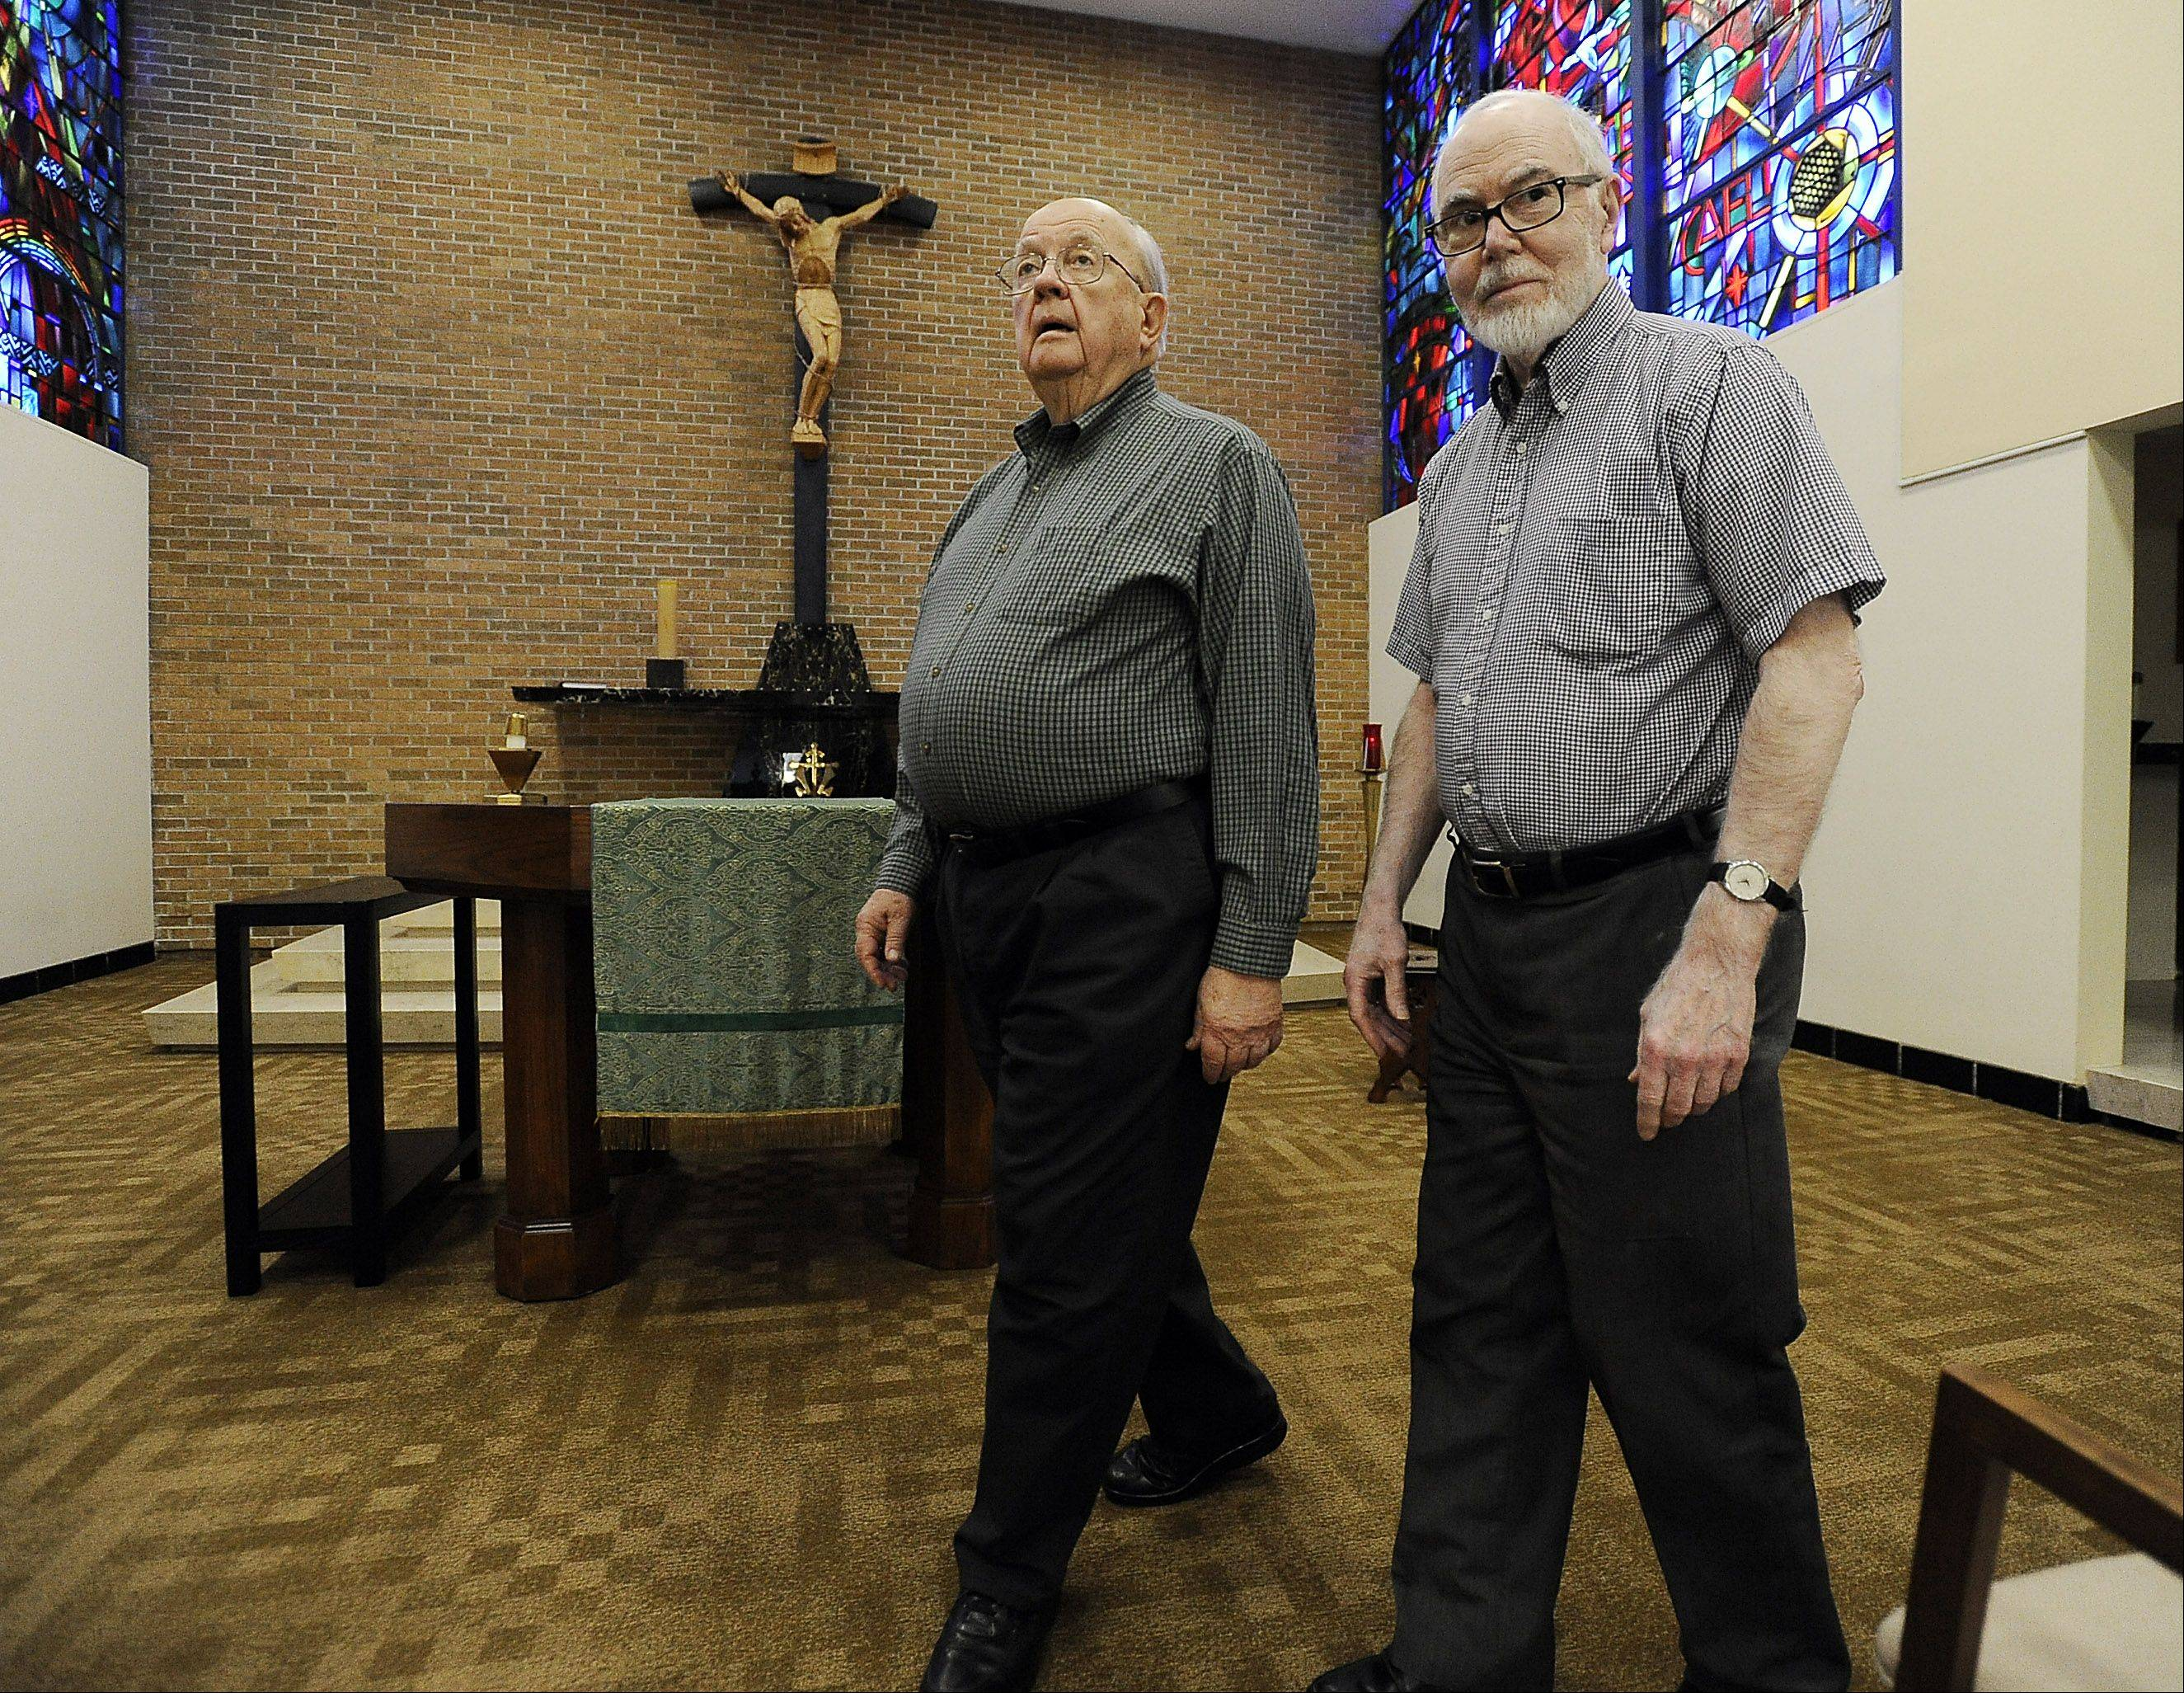 The Rev. John Milton, 84, and the Rev. Jim Michaletz, 82, both of the Clerics of St. Viator, were teaching at St. Viator High School in Arlington Heights at the time of John F. Kennedy's assassination 50 years ago. They remember sitting in stunned silence with their classes as they listened to the radio for updates on what had happened.